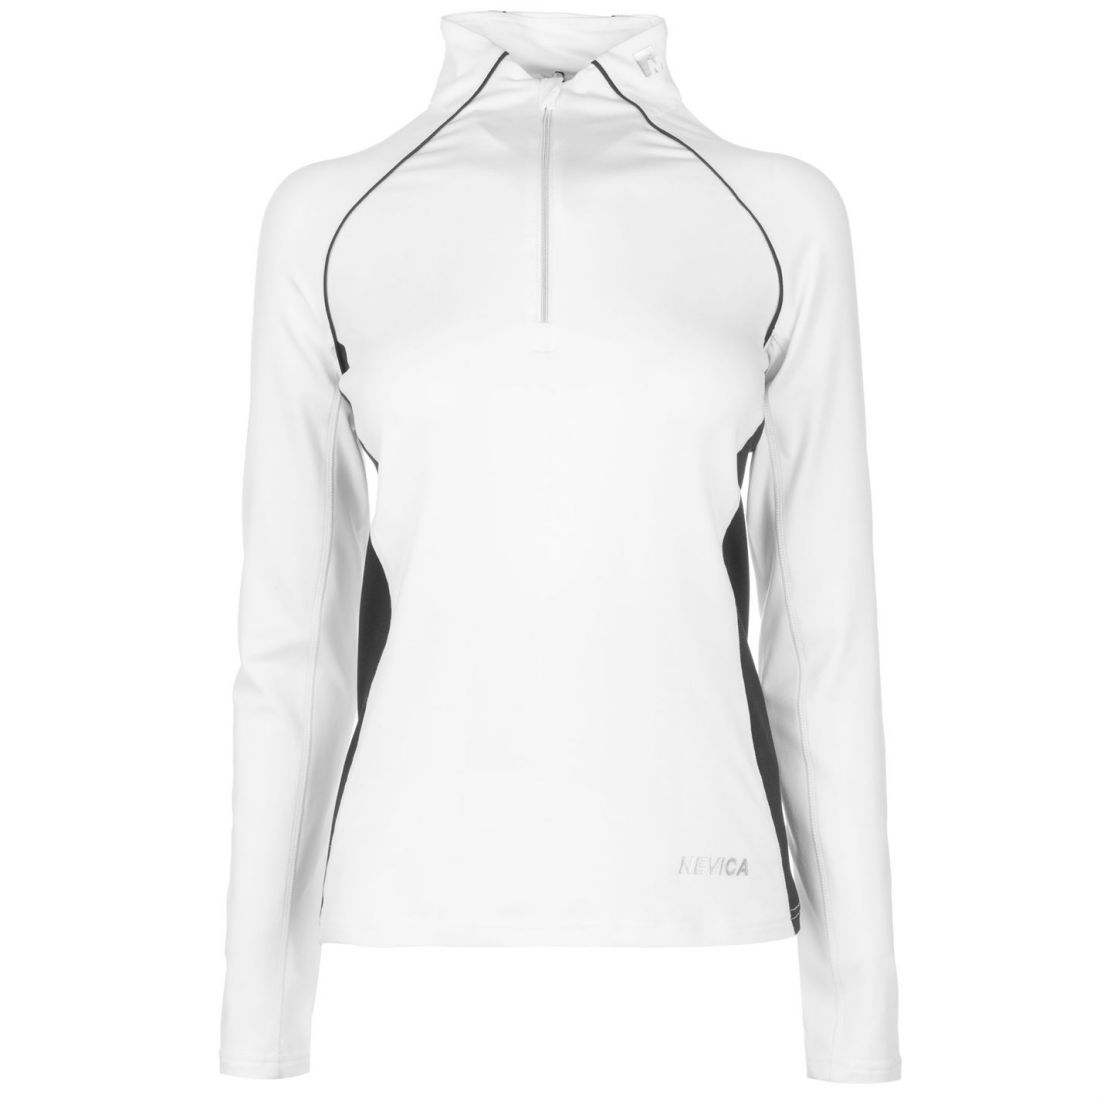 33edd4a4d5 Details about Nevica Womens Vail Quarter Zip Top Baselayer Compression  Armor Thermal Skins